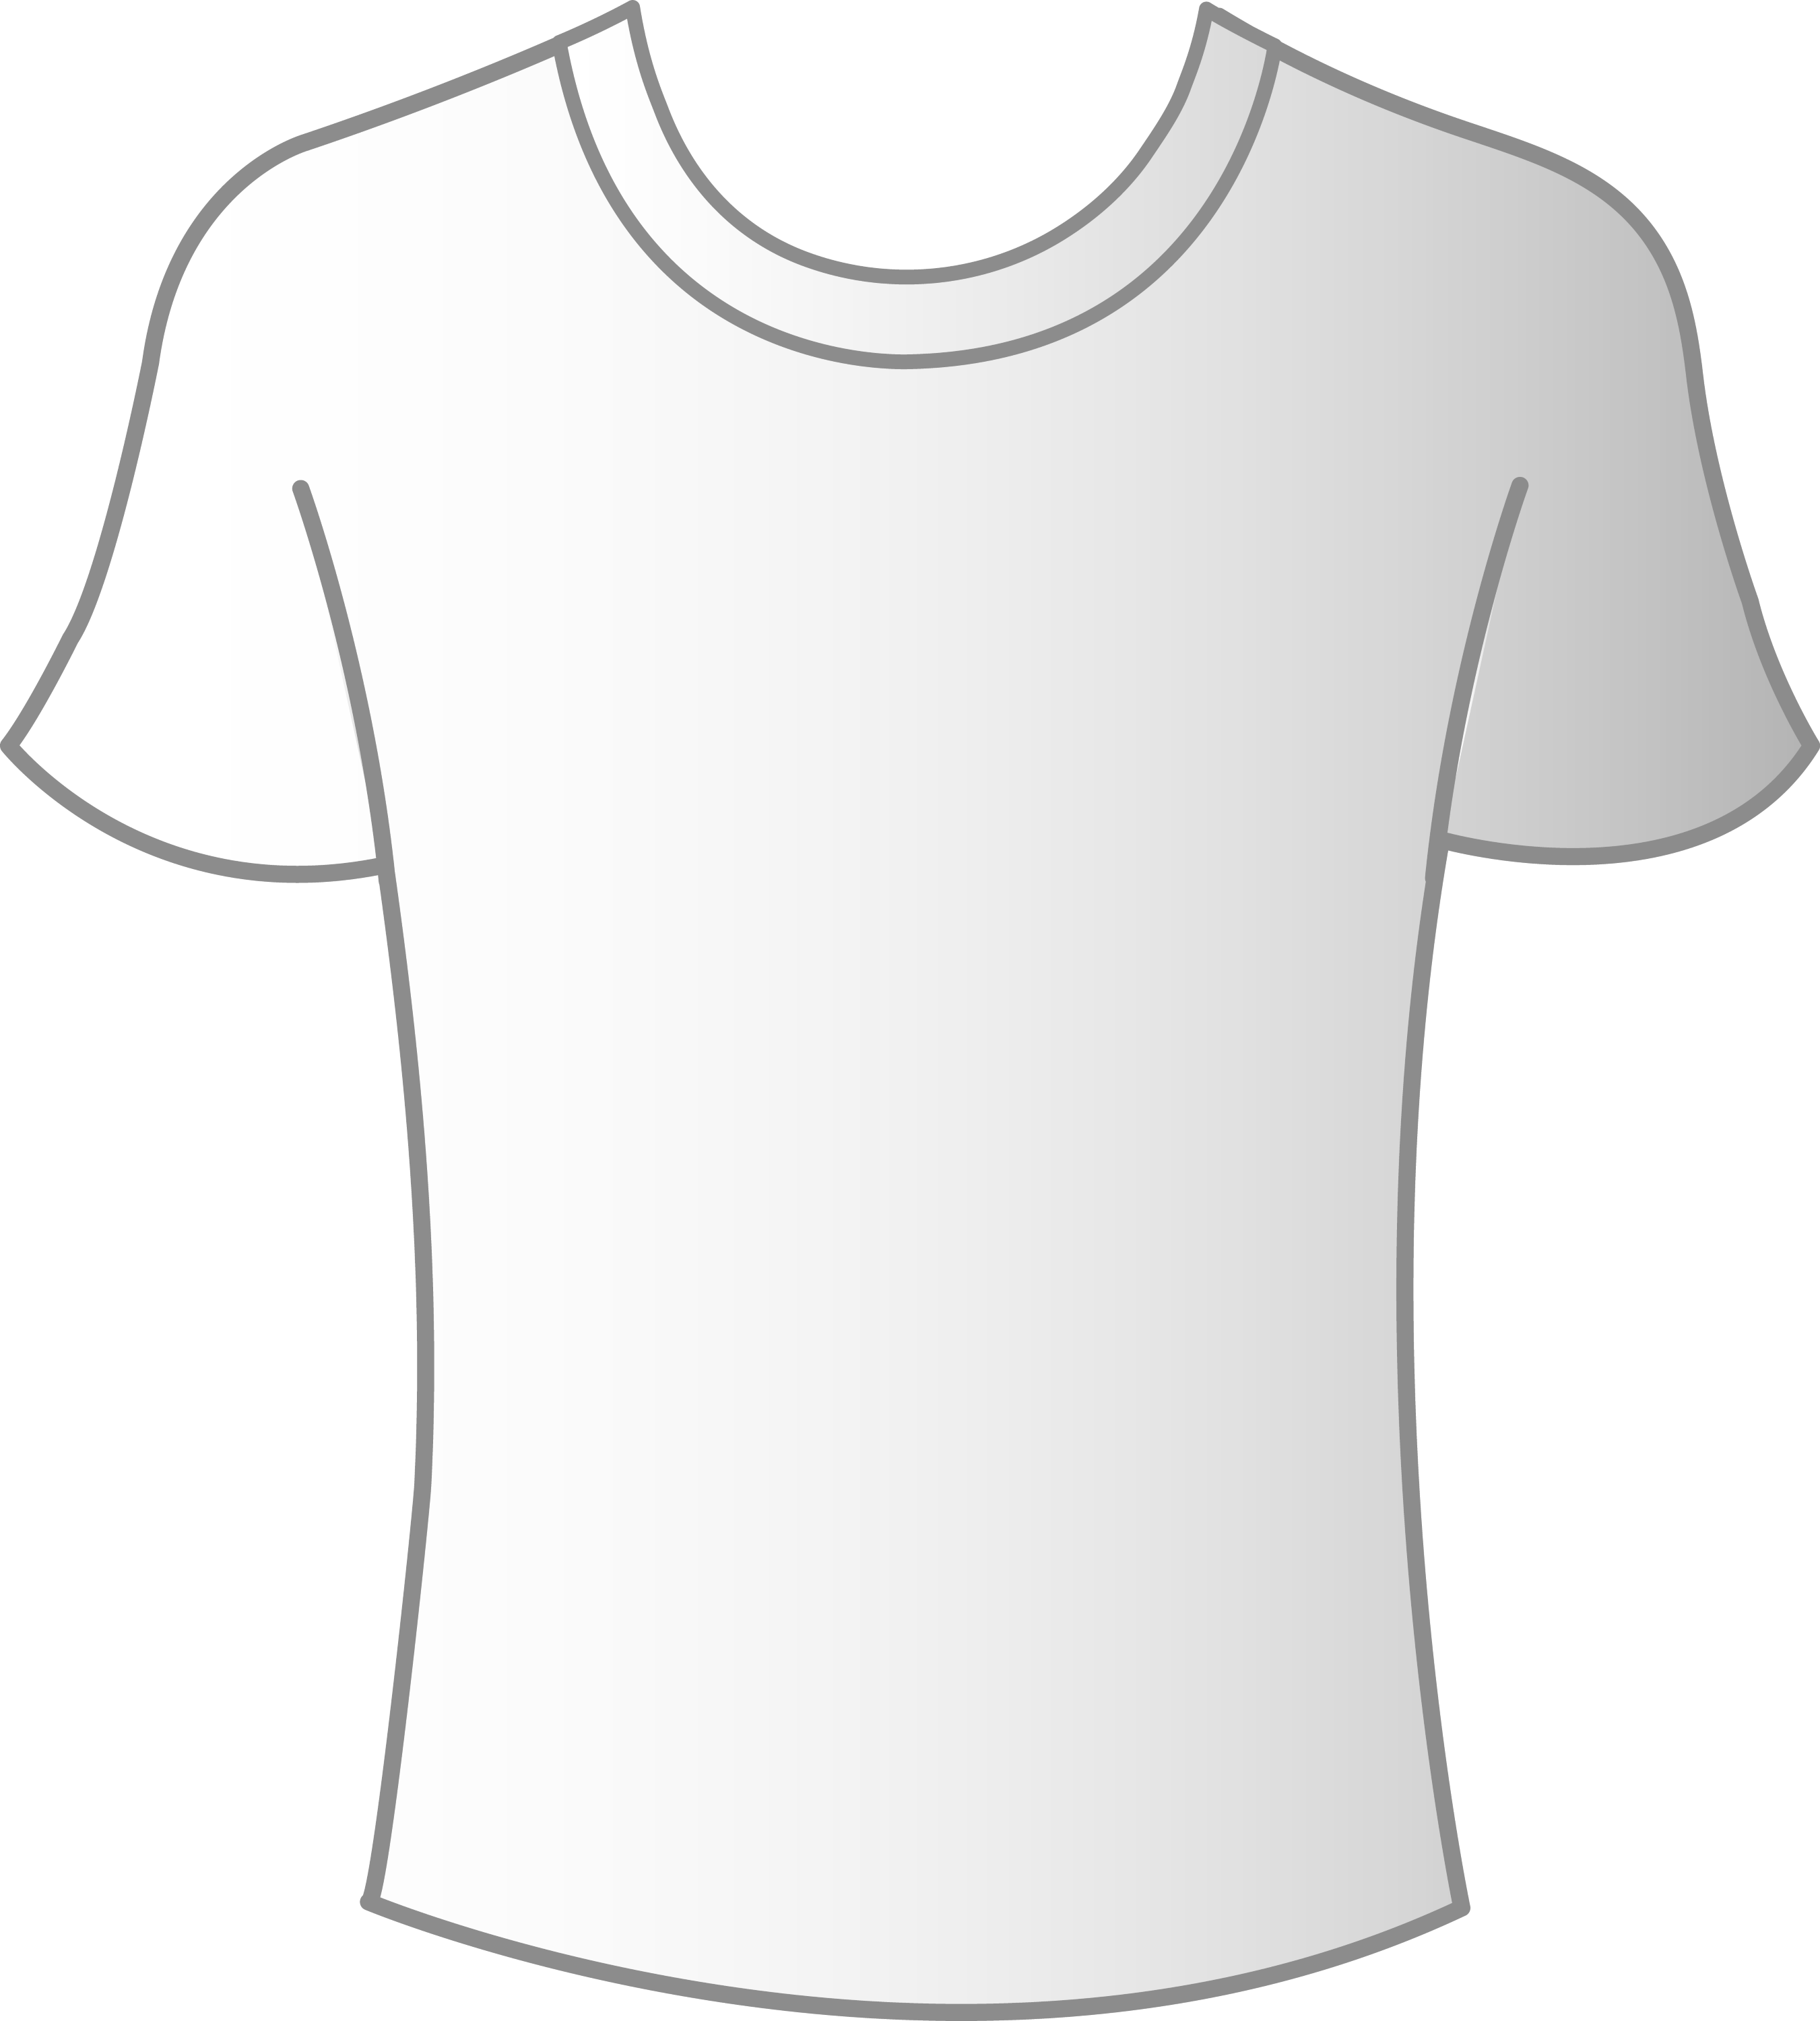 Mens White T Shirt Template Free Clip Art